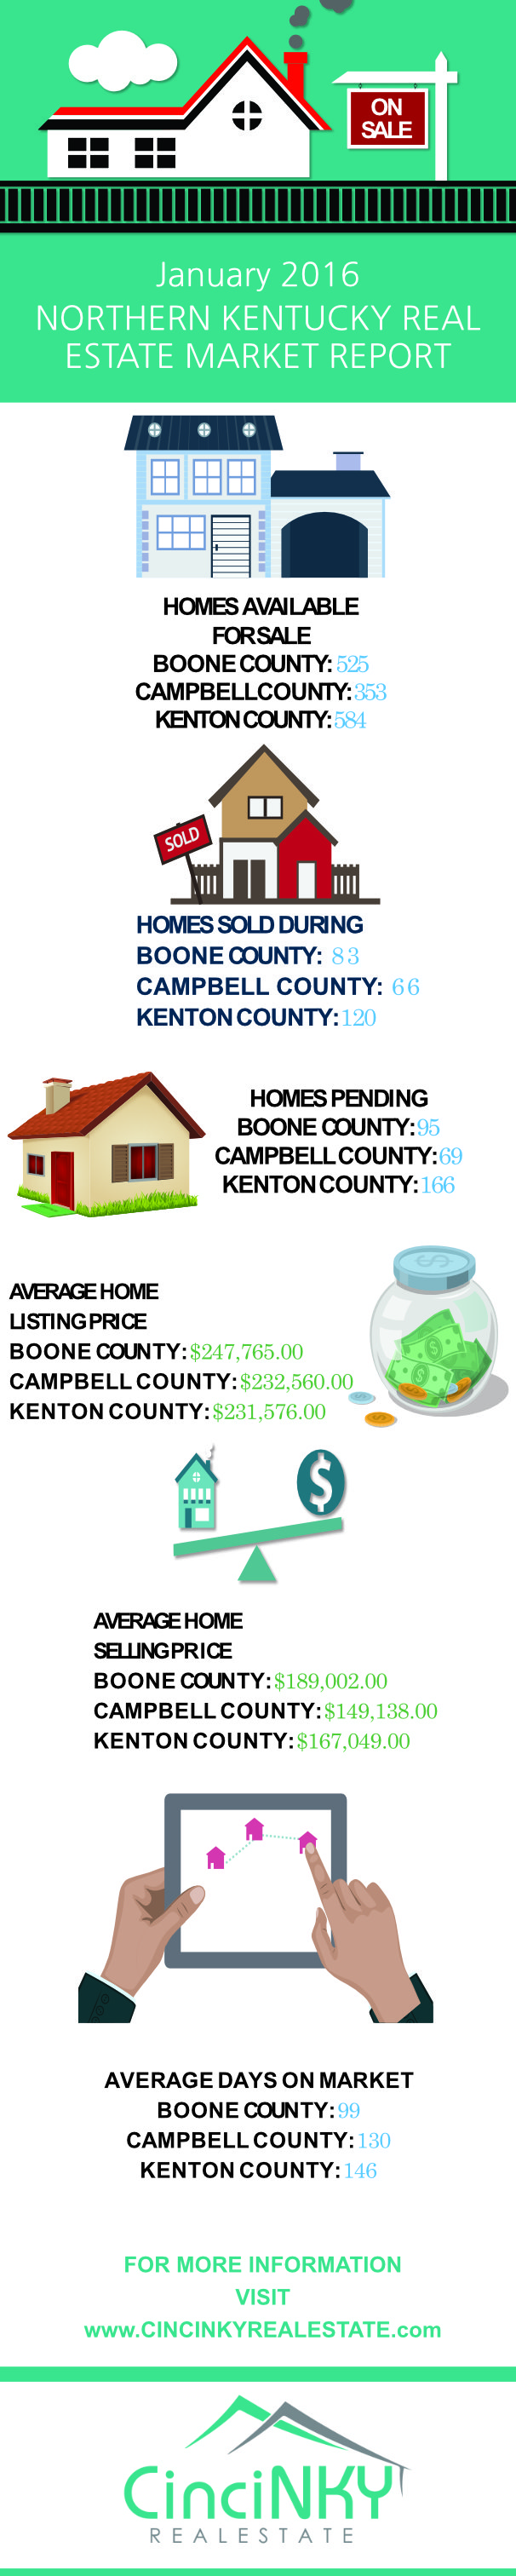 January 2016 Northern Kentucky Real Estate Market Report